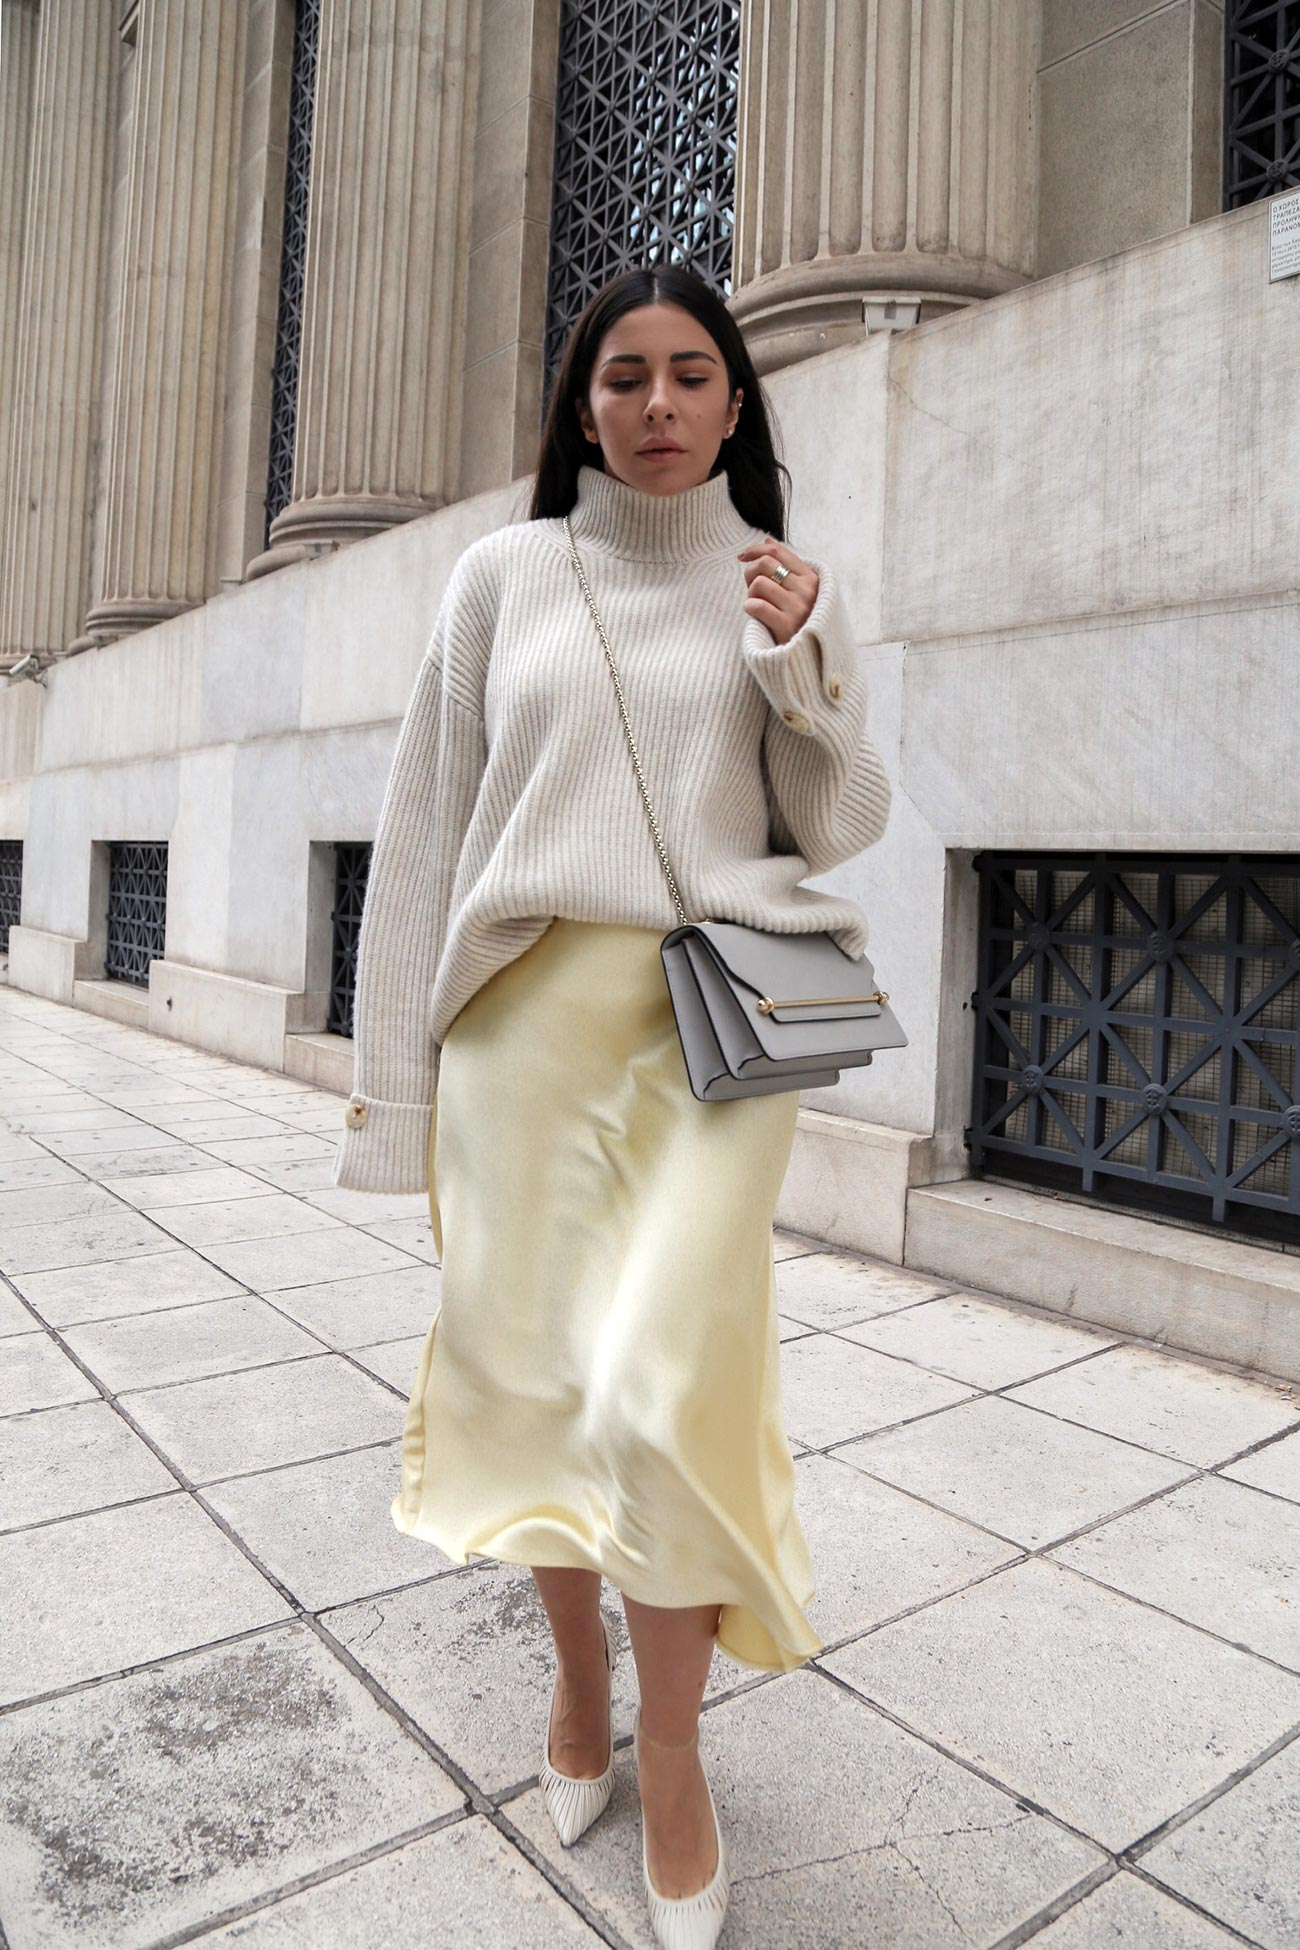 satin slip skirt & sweater